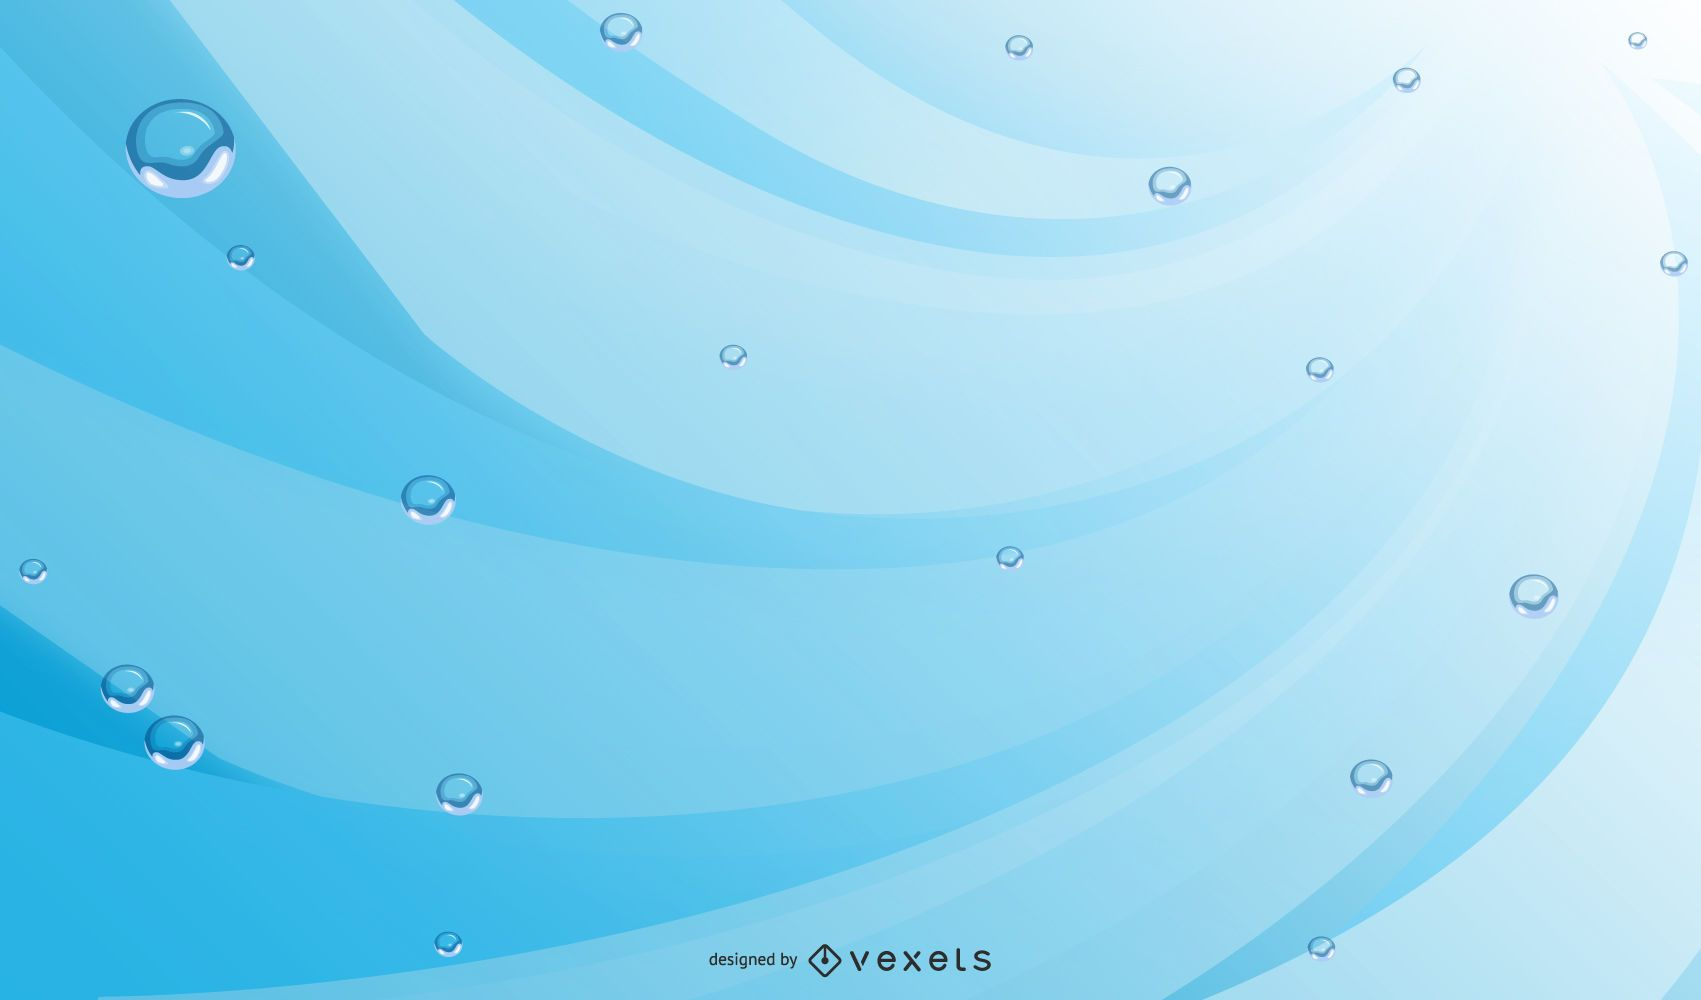 Abstract Blue Background with Water Bubbles & Lines